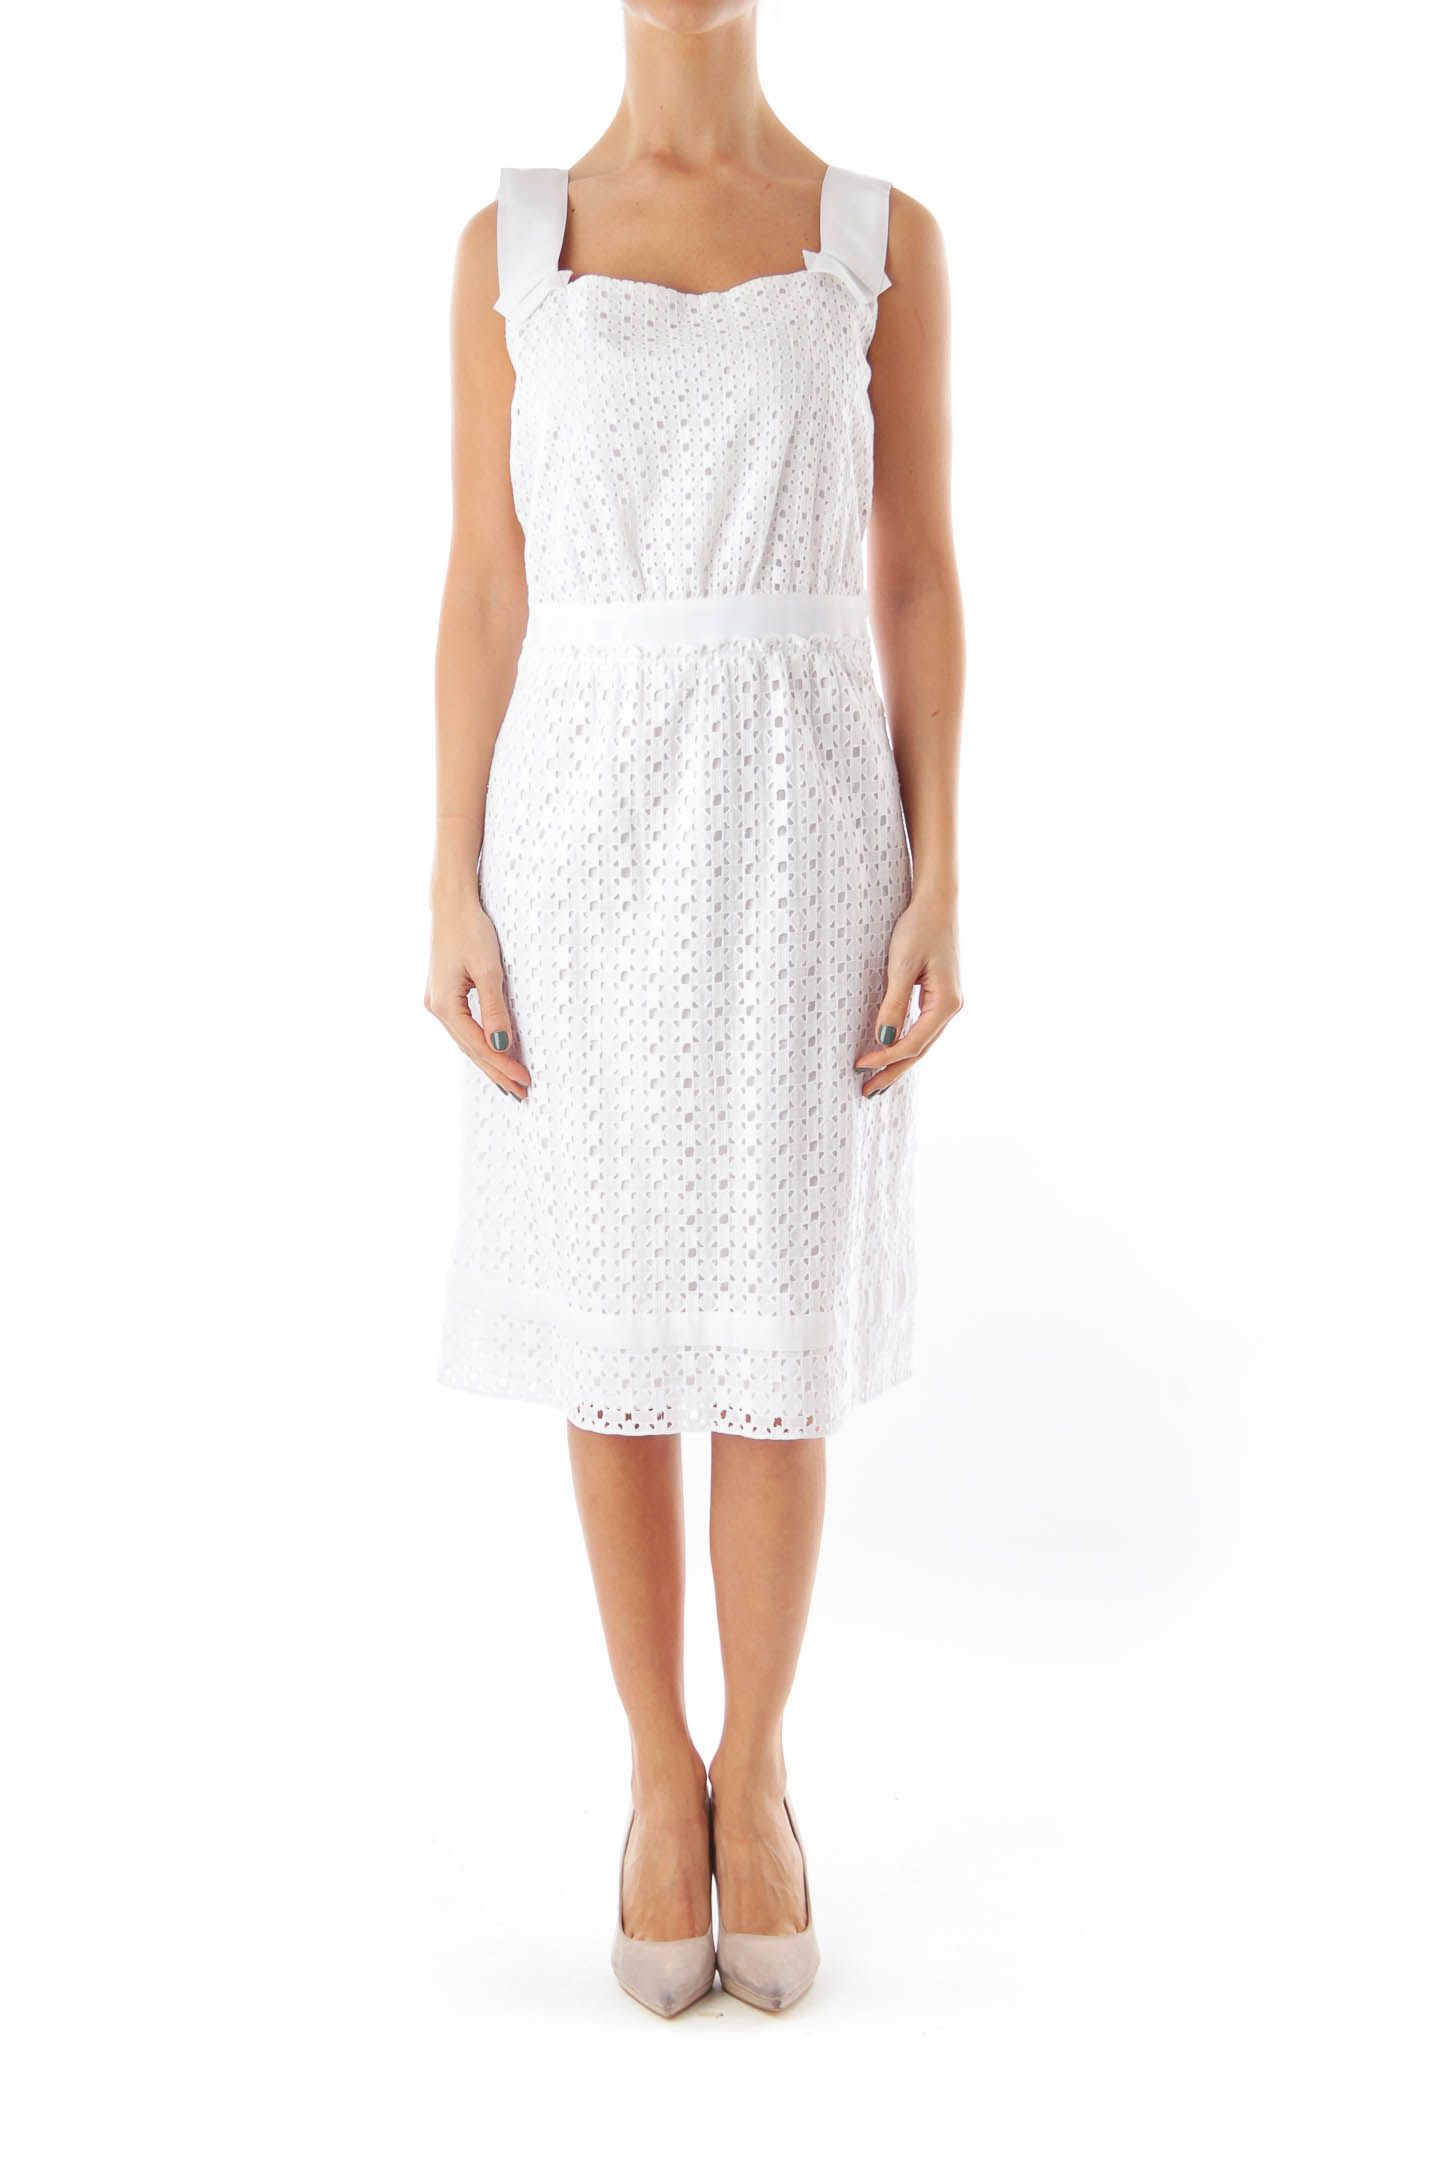 Like This Elie Tahari Dress Shop This Without Using Money Trade Shop Discover Fashionexchange Prelov White Lace Shift Dress Lace Shift Dress Shift Dress [ 2169 x 1446 Pixel ]